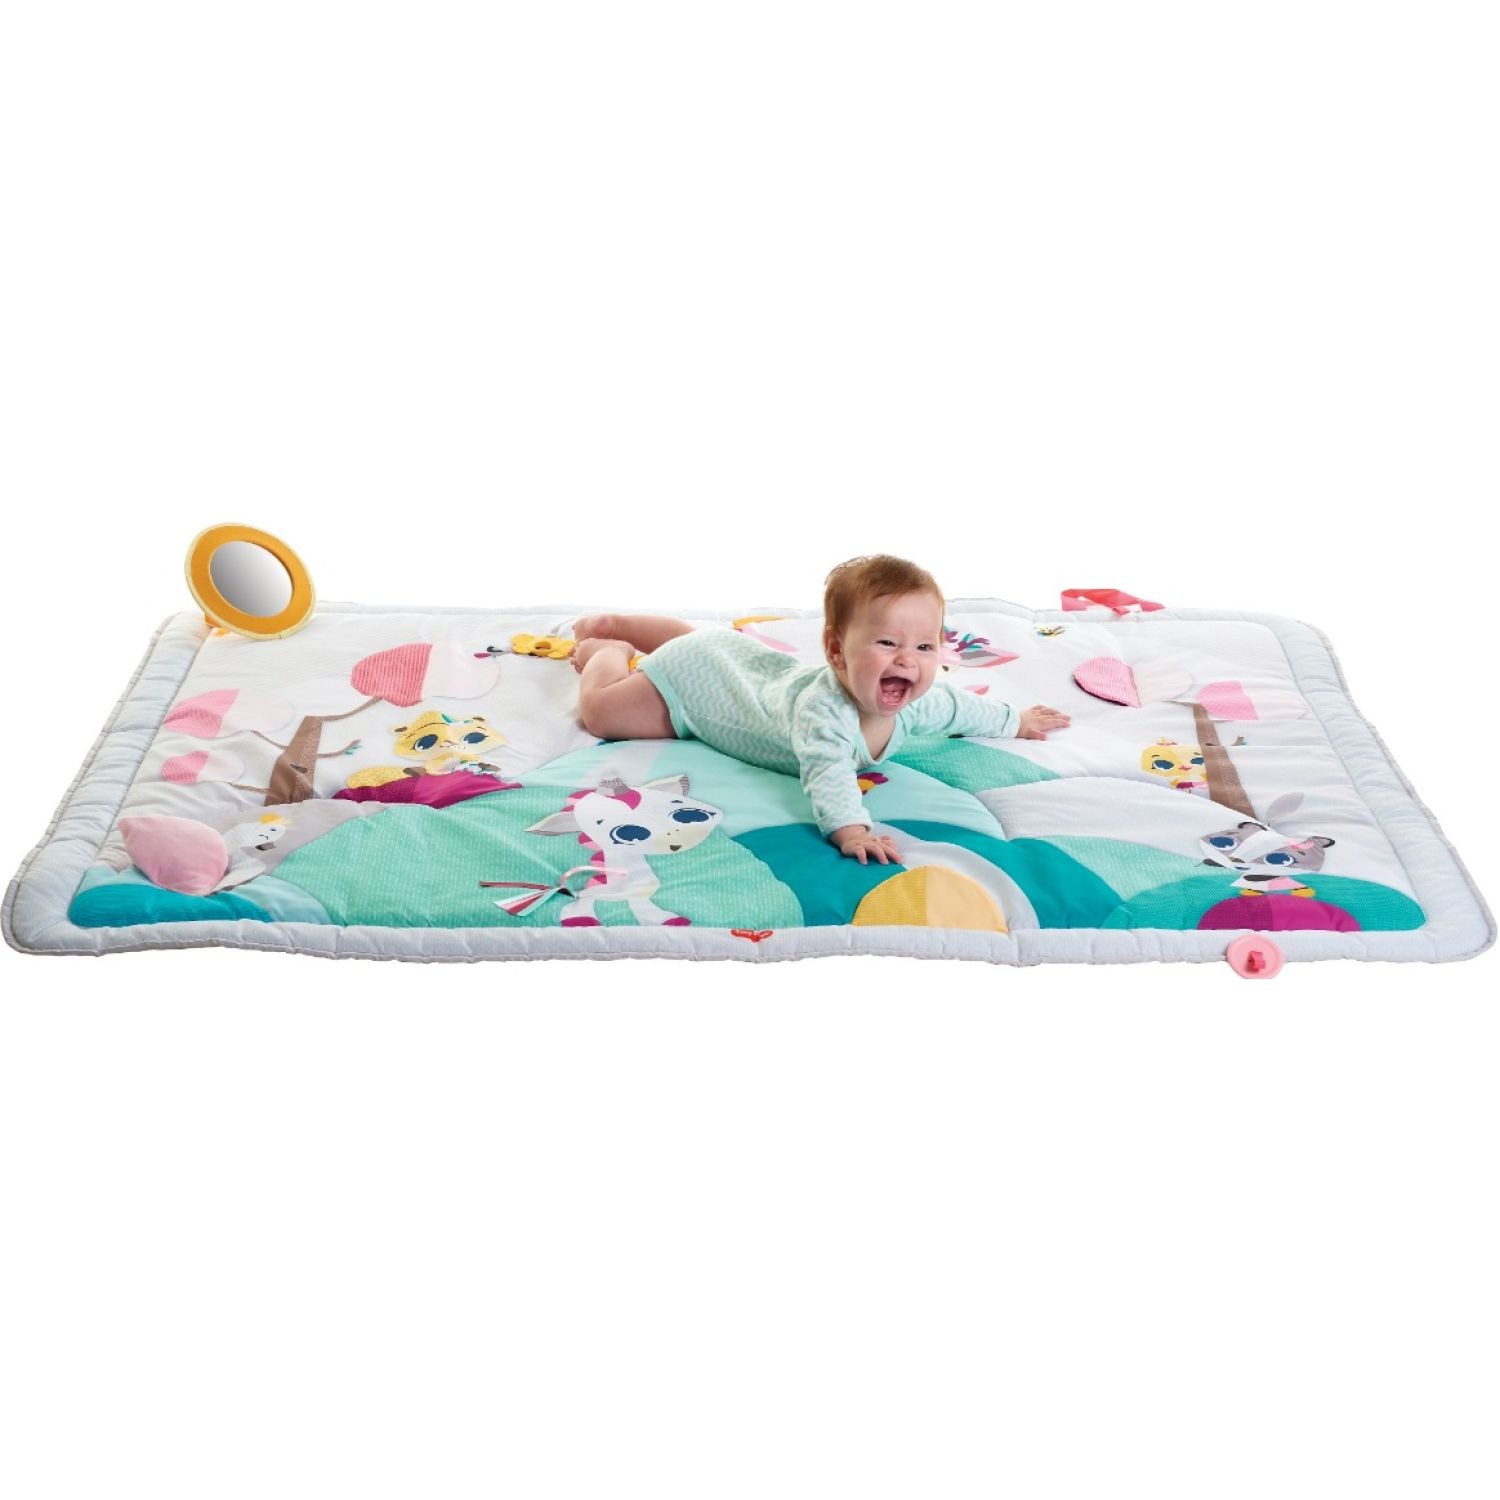 TINY LOVE Super Mat Tiny Princess Tales MULTICOLOR Juguetes y Accesorios de Cuna